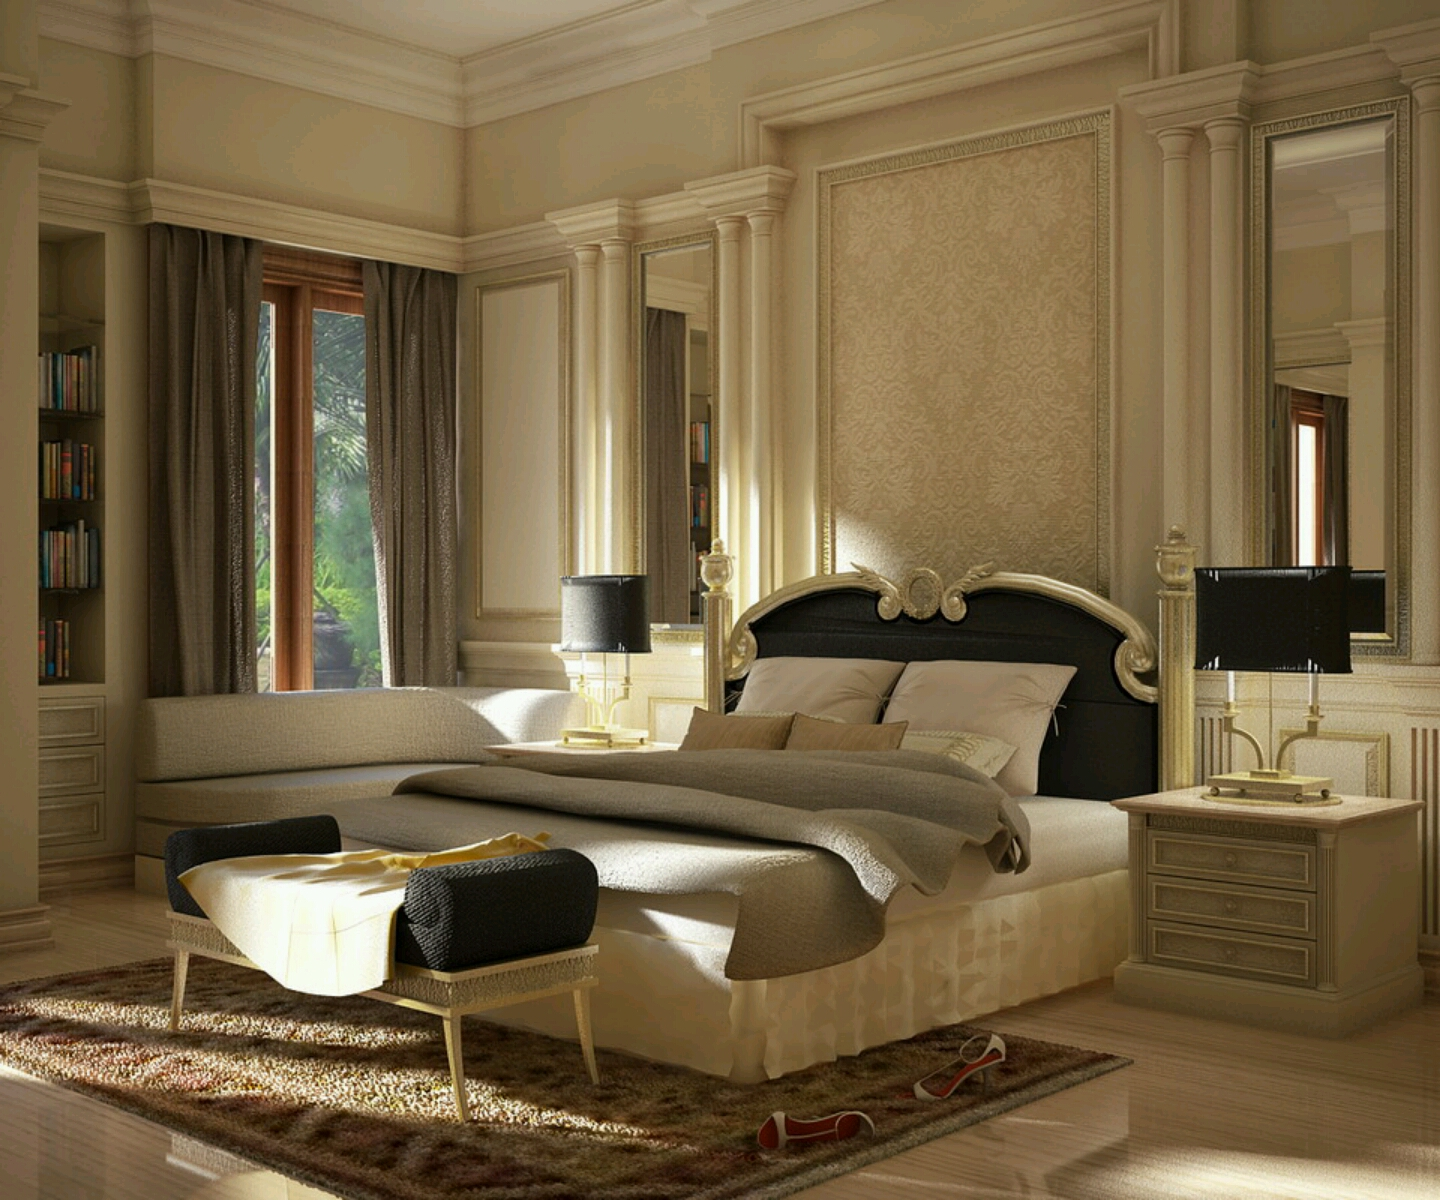 Modern luxury bedroom furniture designs ideas. | Interior Design